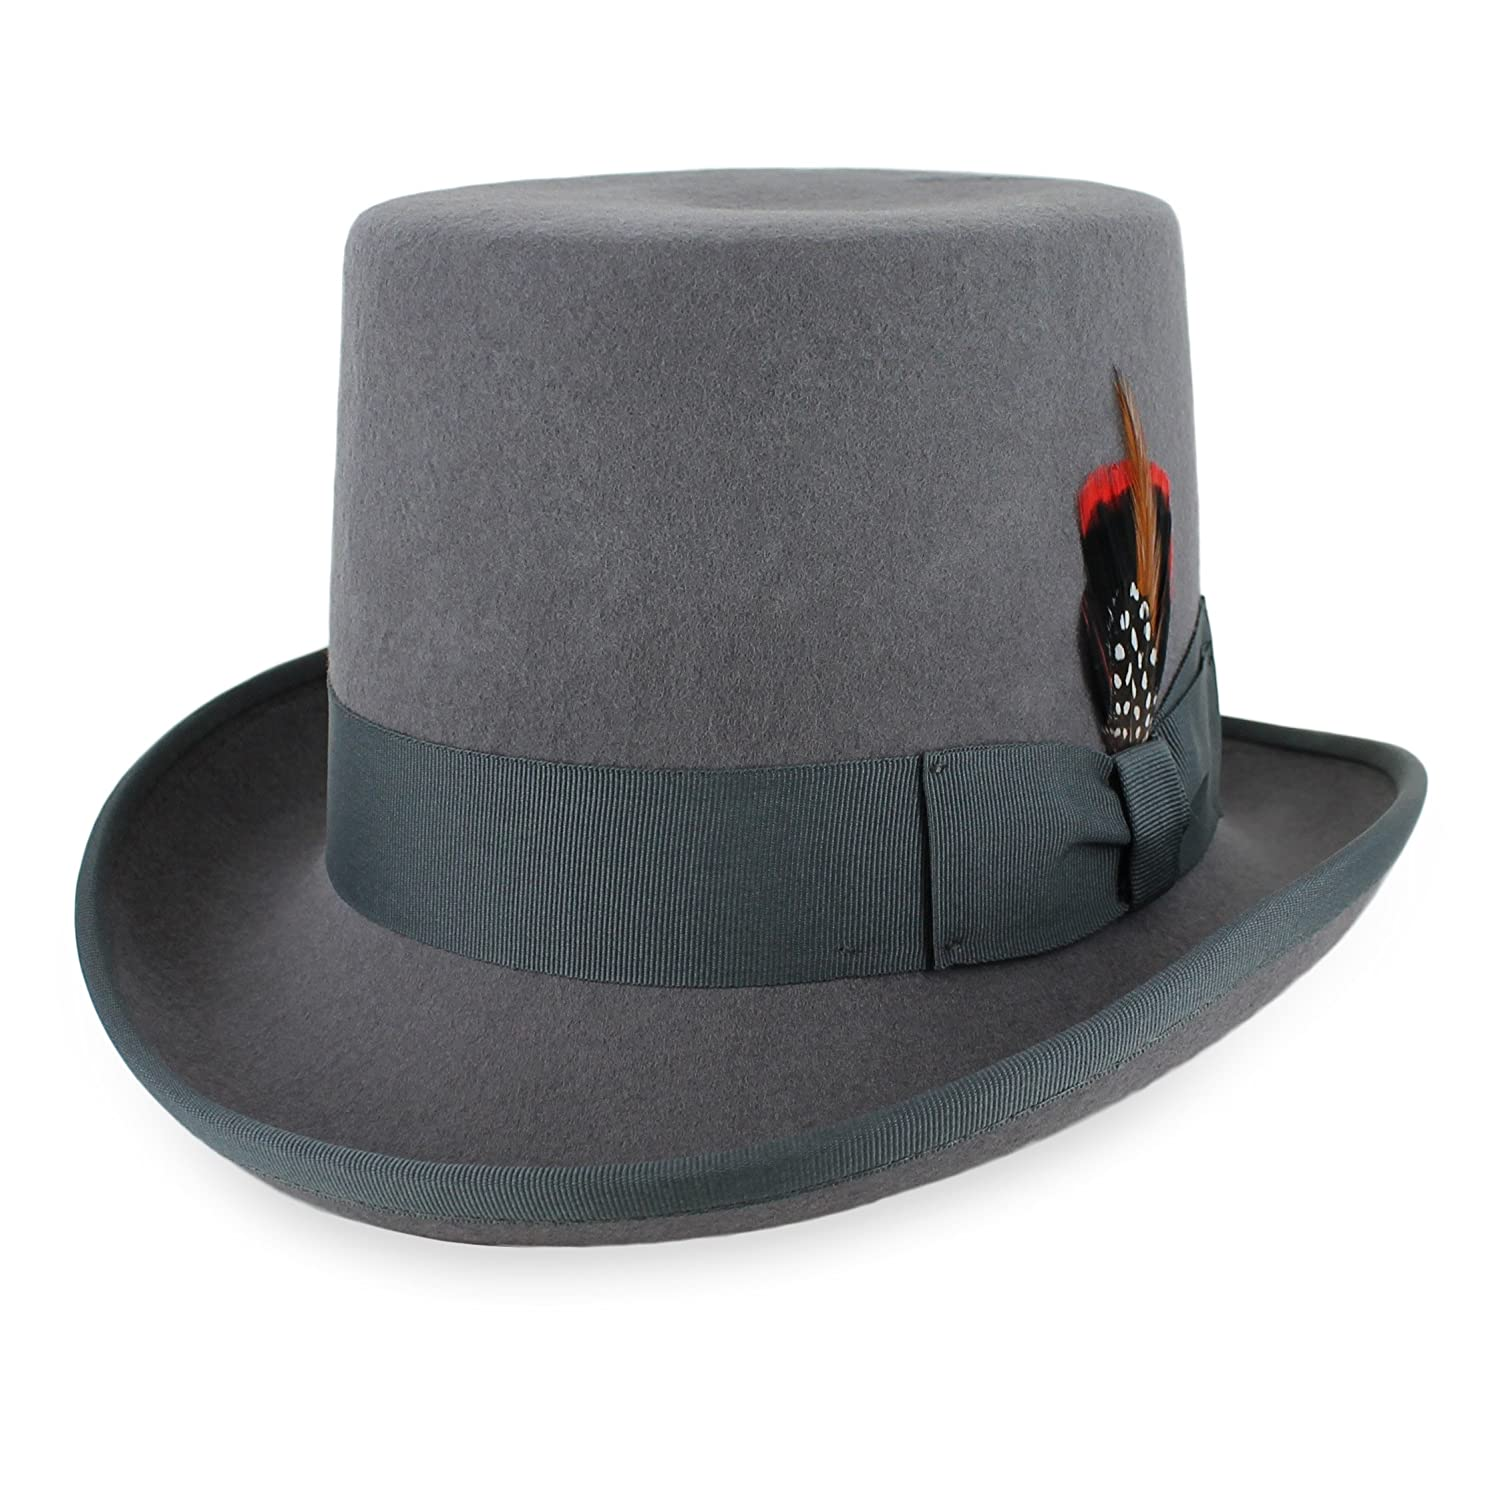 Steampunk Hats | Top Hats | Bowler Mens Top Hat Satin Lined Topper by Belfry 100% Wool in Black Grey Navy Pearl $39.95 AT vintagedancer.com